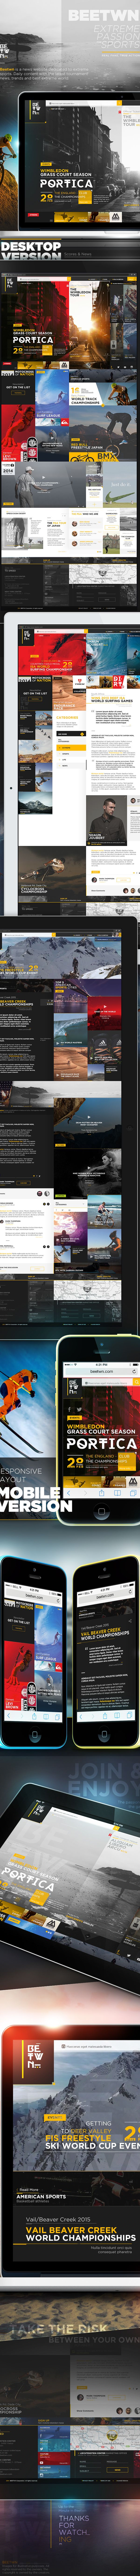 pinterest.com/fra411 #webdesign - BEETWN - Extreme Sports Magazine Concept by Josué Solano, via Behance